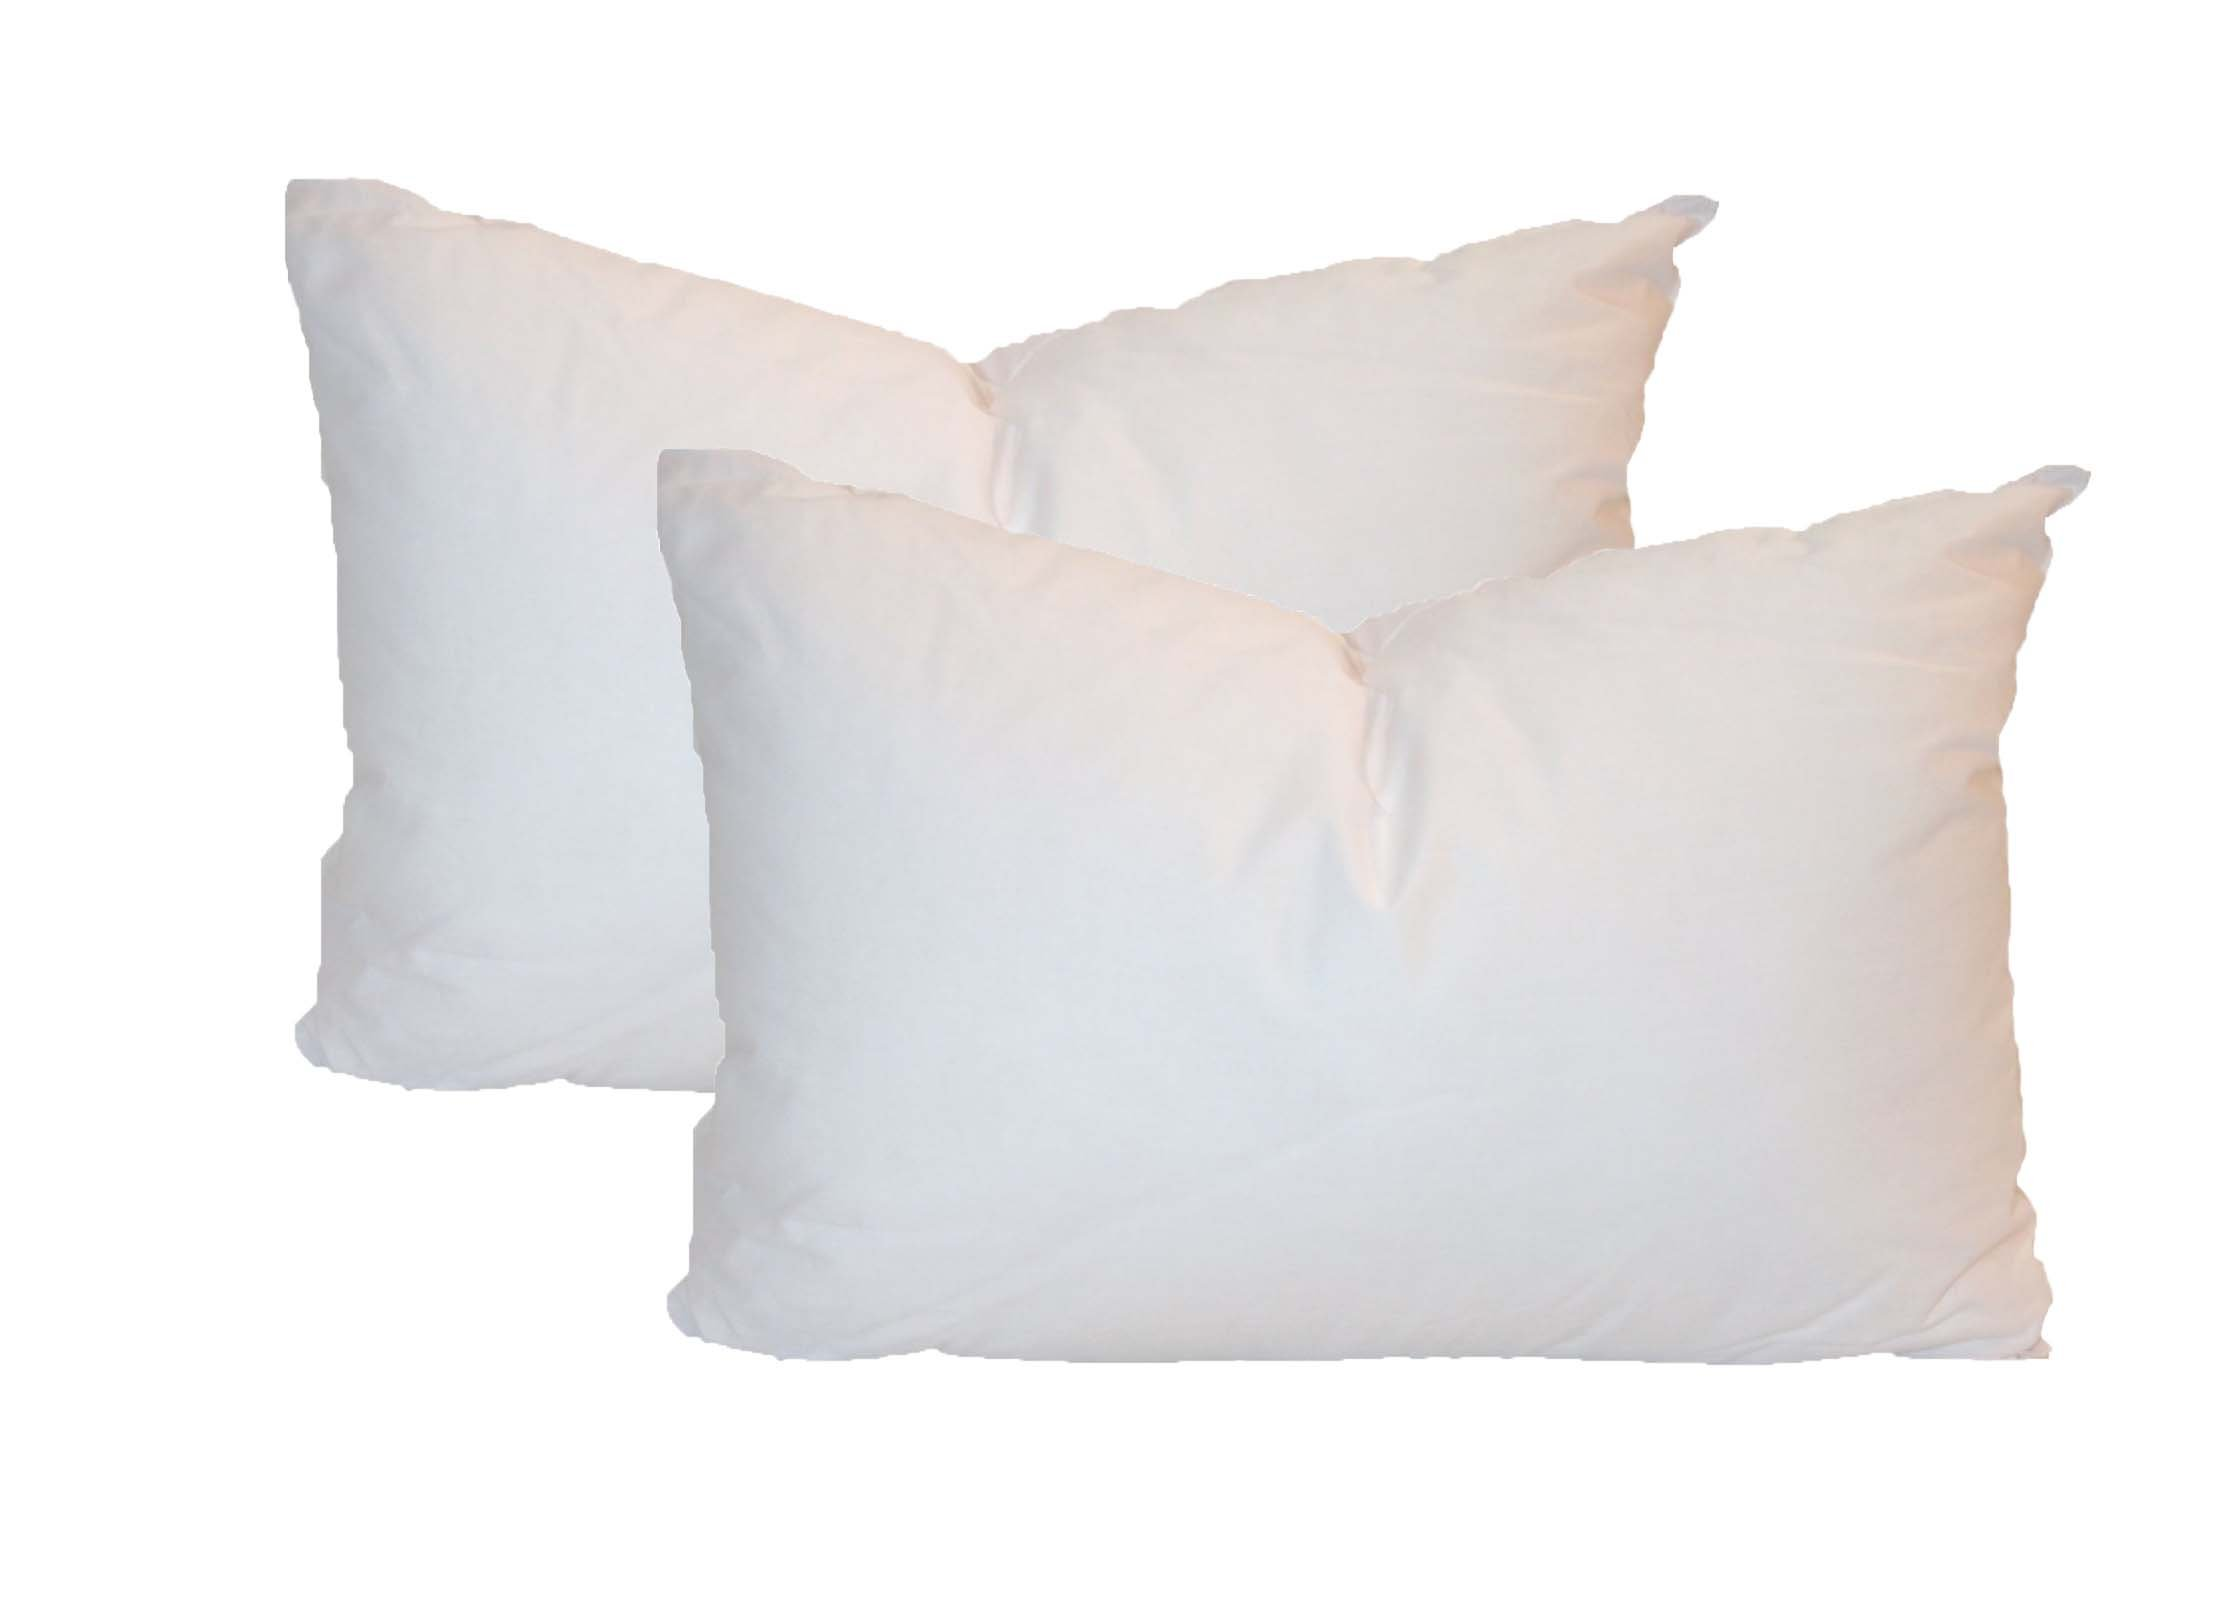 Pillowflex Set of 2 Synthetic Down Alternative Pillow Inserts for Shams (12 Inch by 24 Inch) by Pillowflex